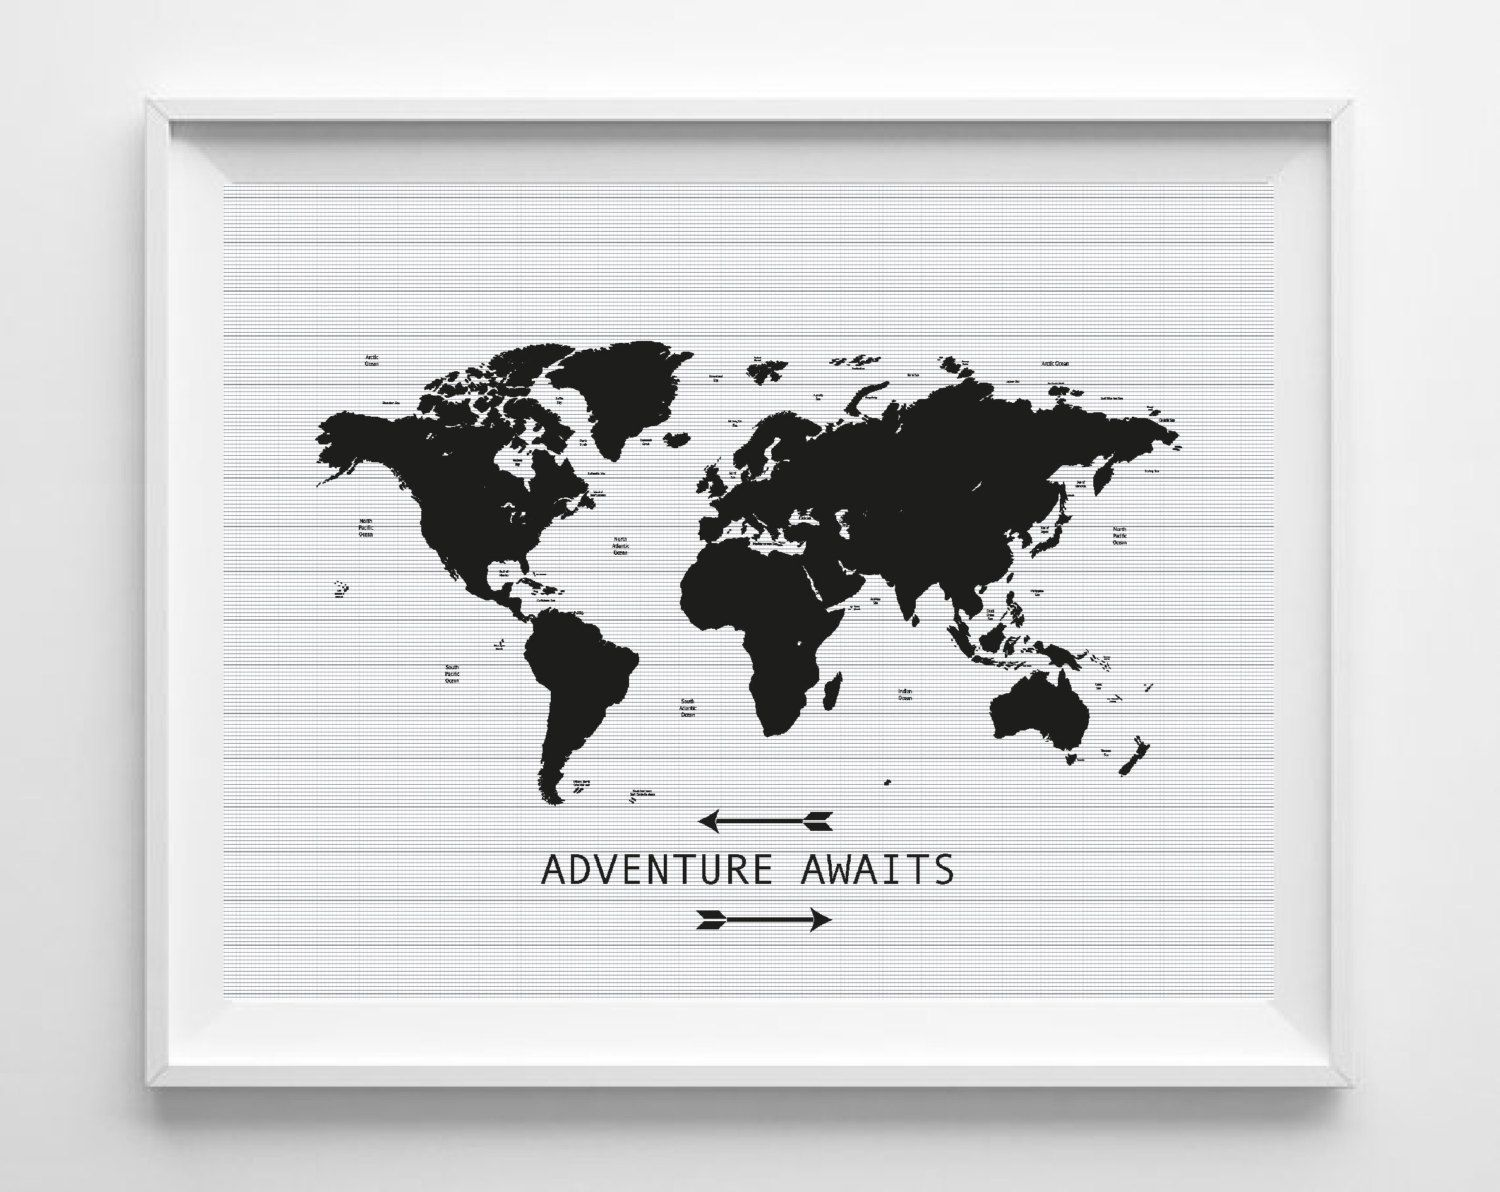 Printable world map art print adventure awaits inspirational quote printable world map art print adventure awaits inspirational quote poster digital instant download print black white nursery art travel gumiabroncs Images